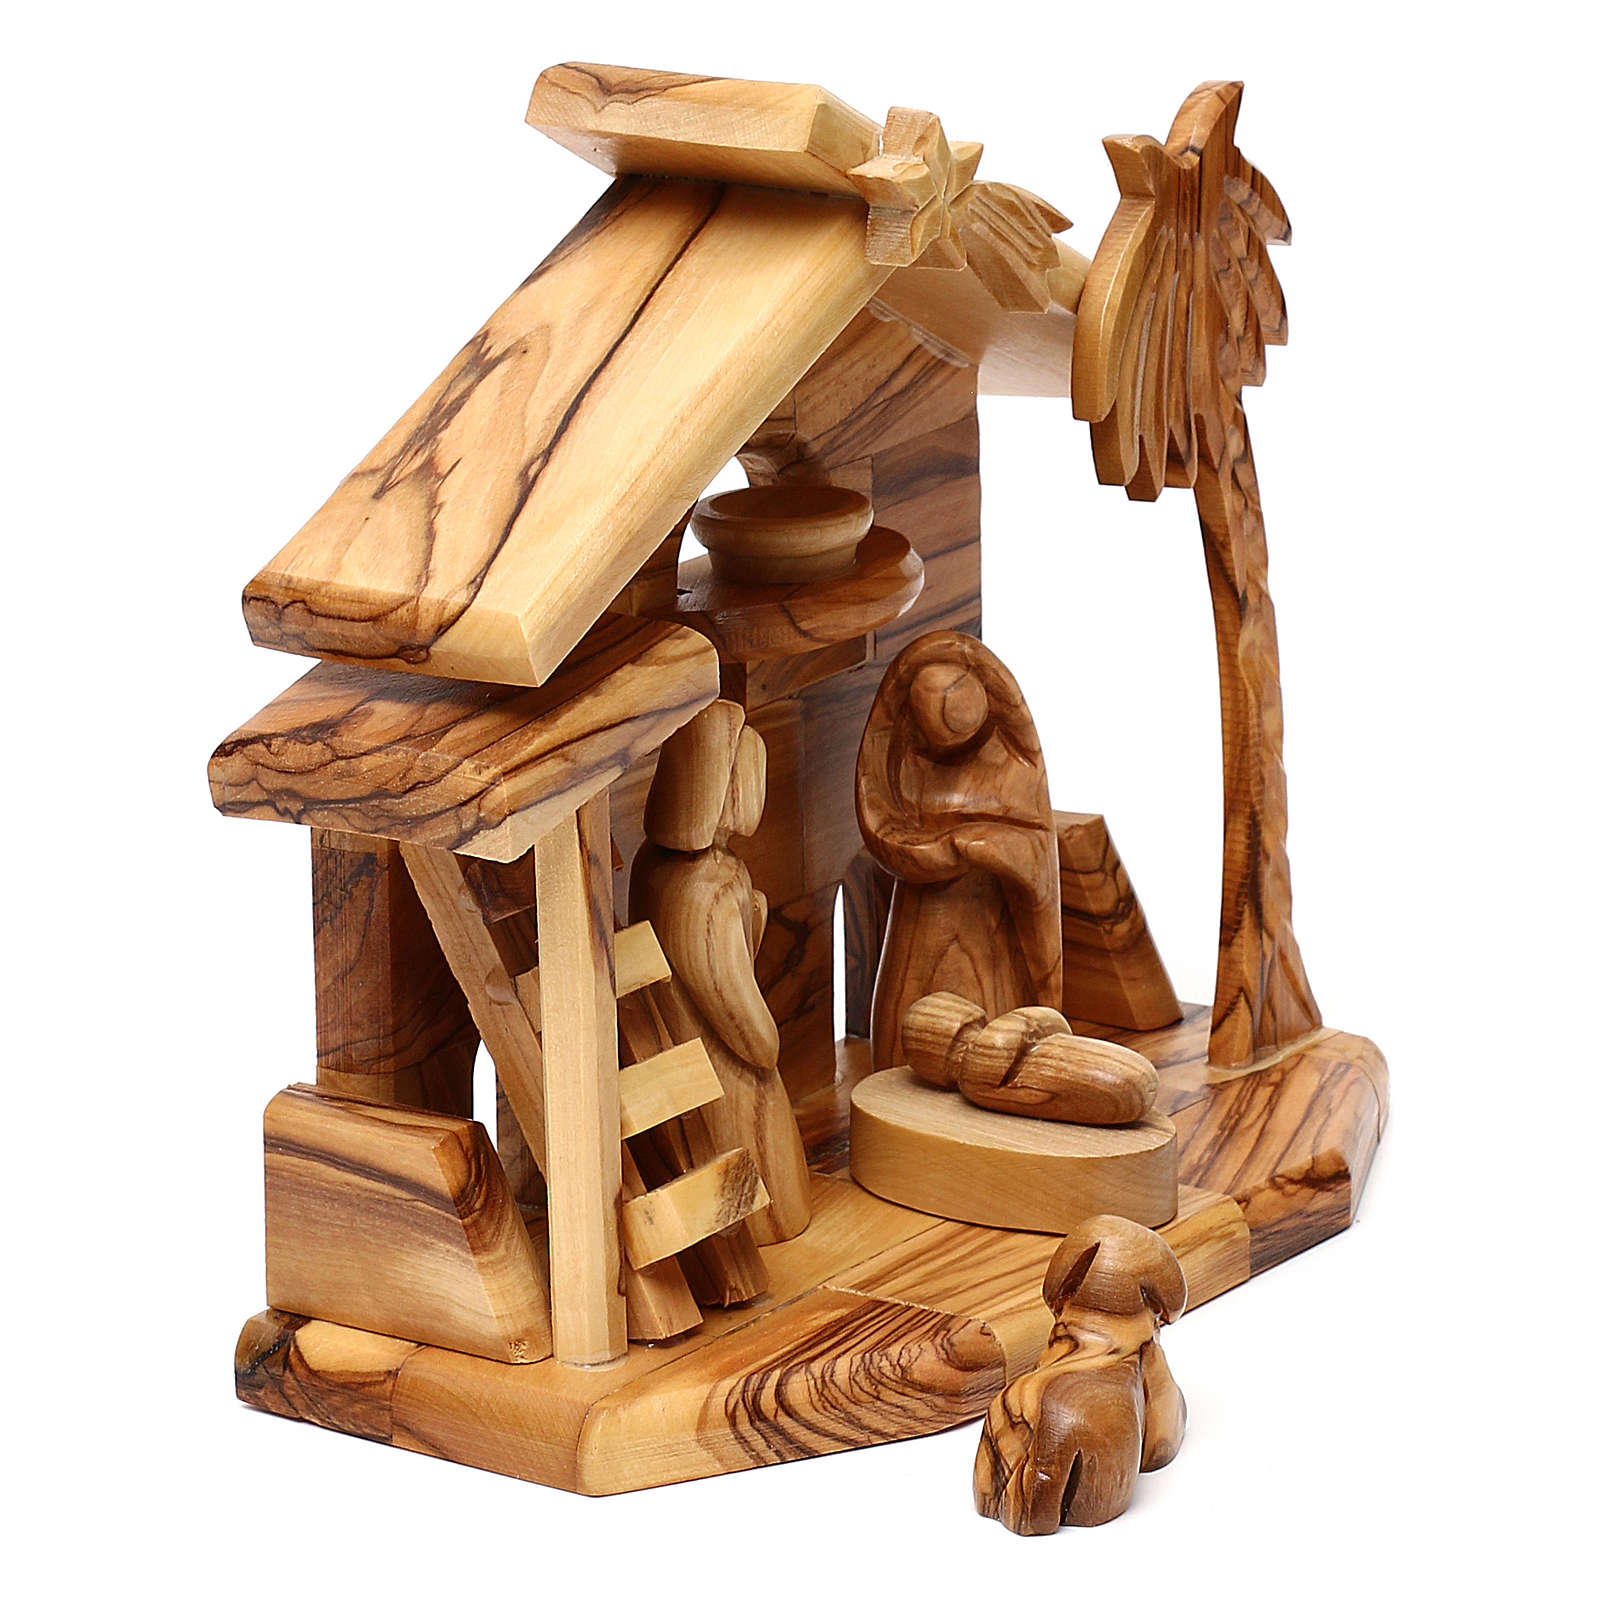 Nativity scene with cave in Bethlehem olive wood 20x20x10 cm 4